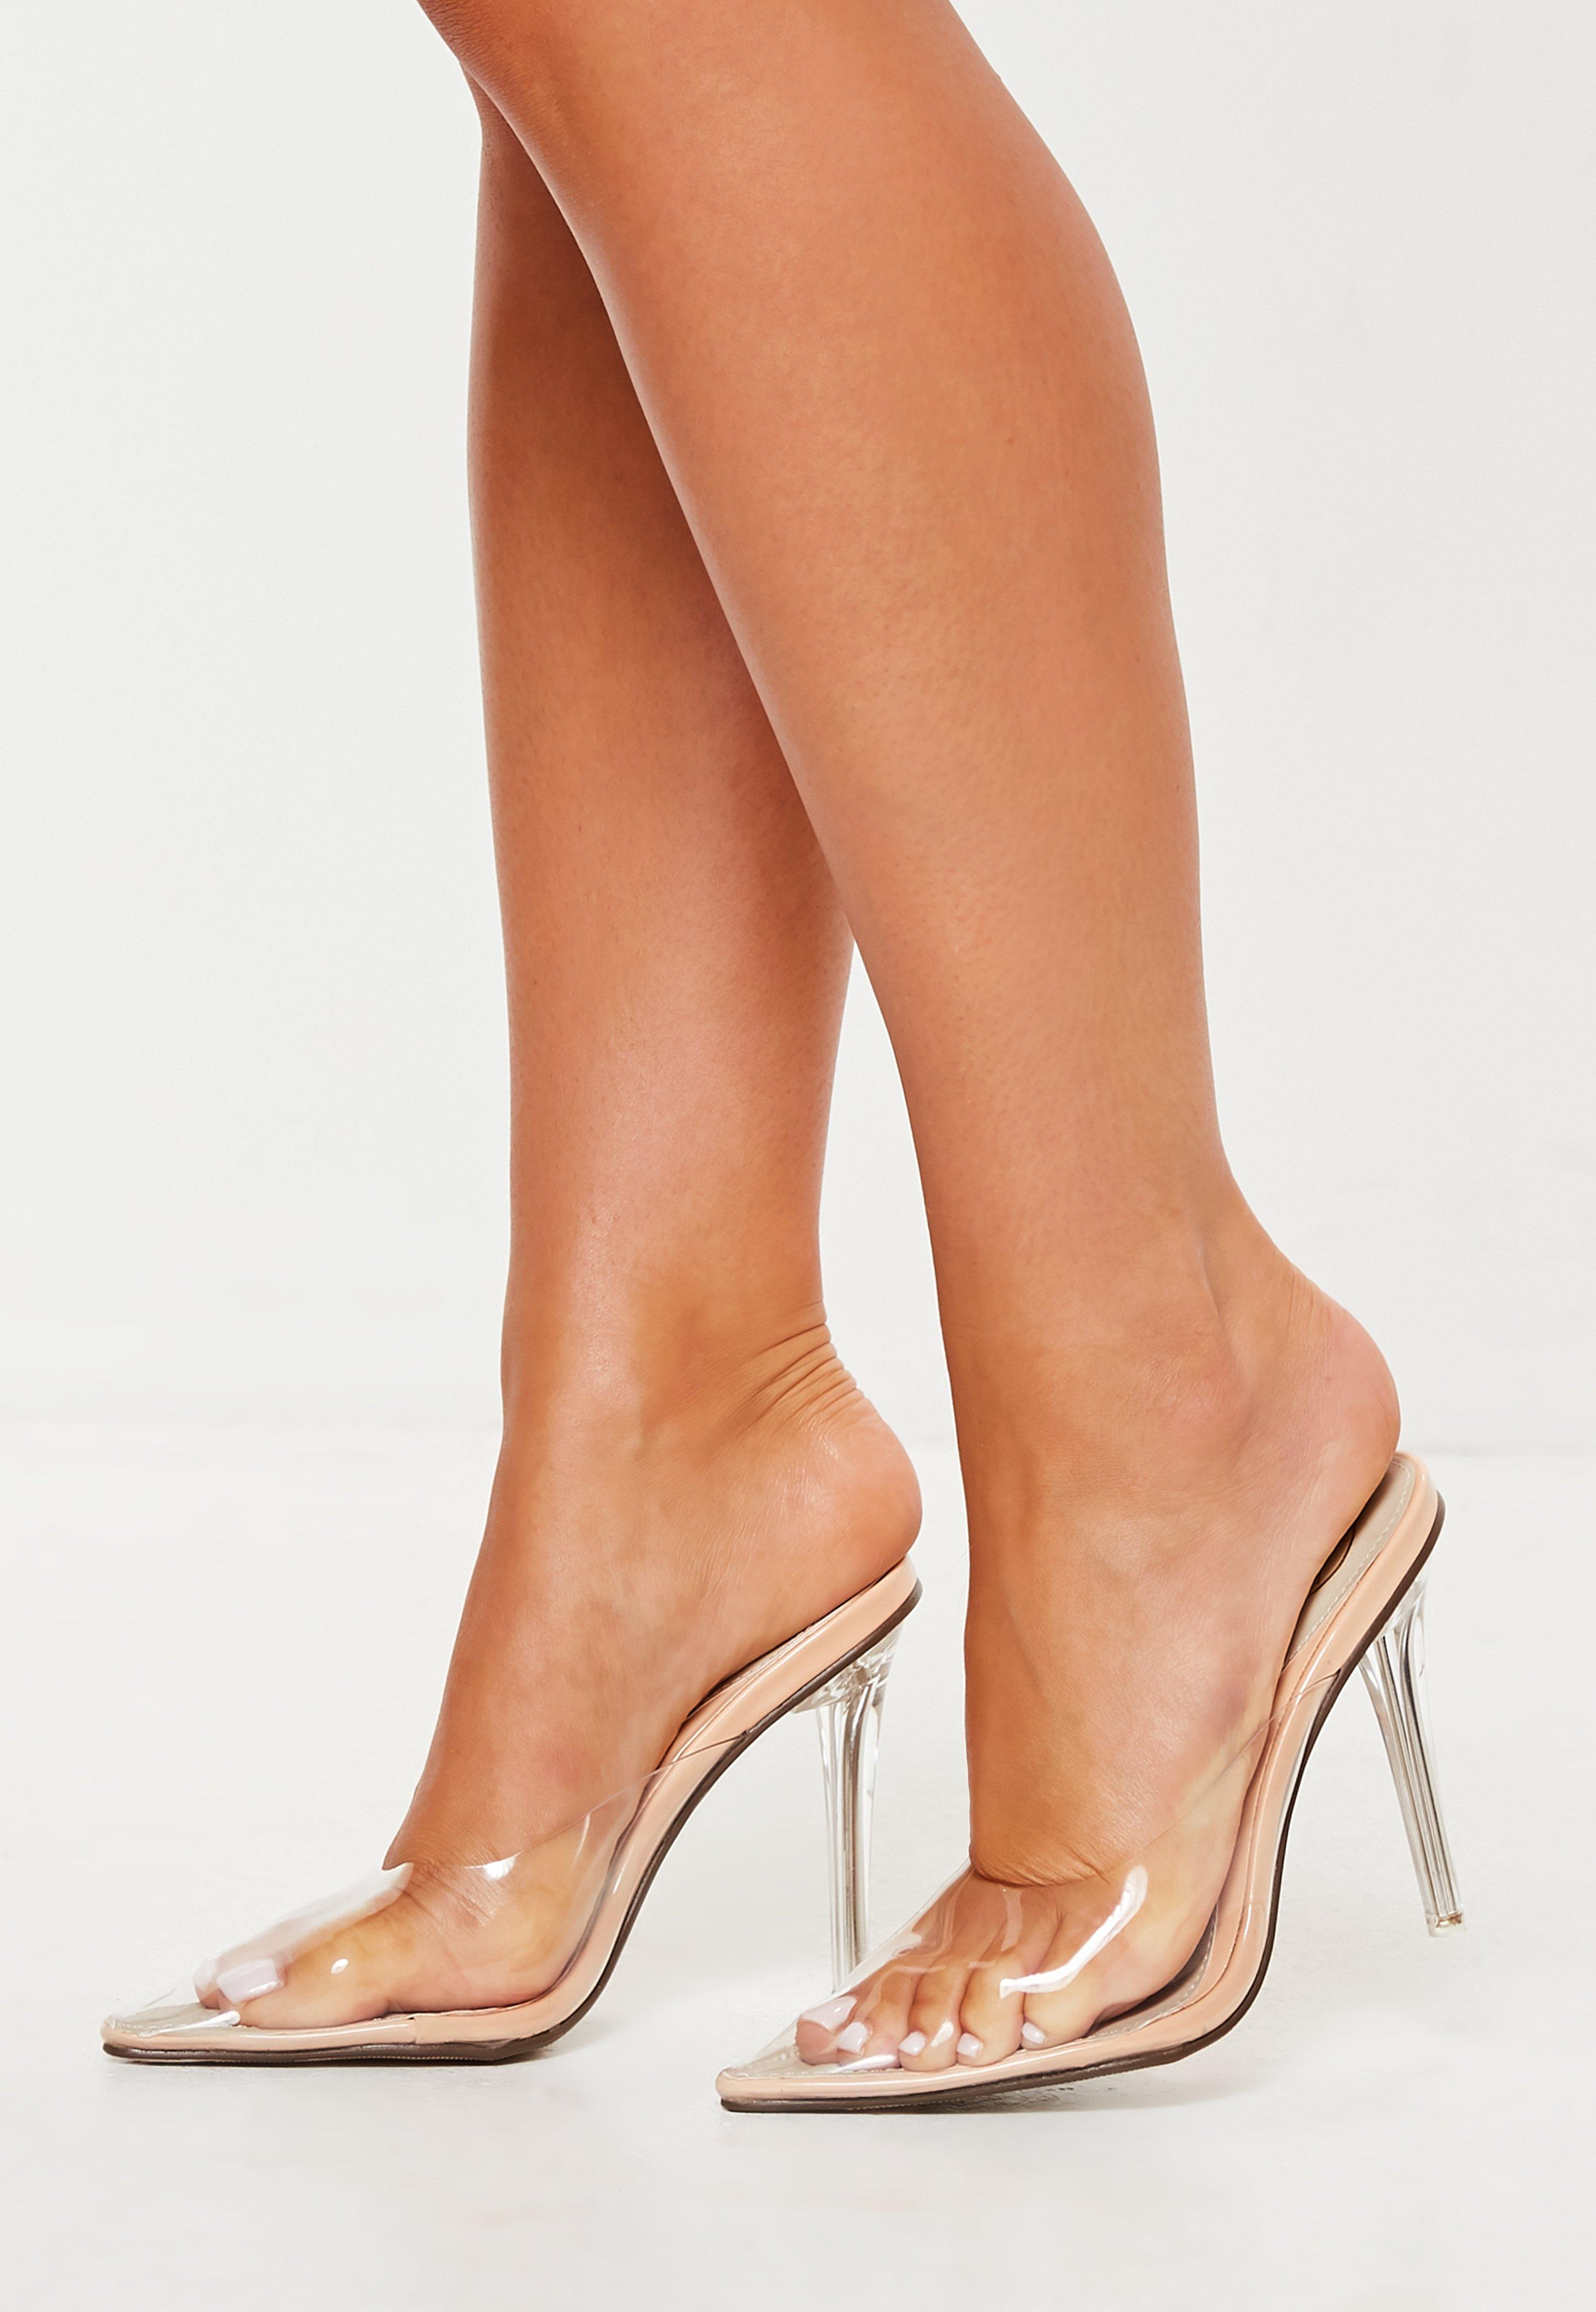 6a5a6636590 Clear Heels - Shoes